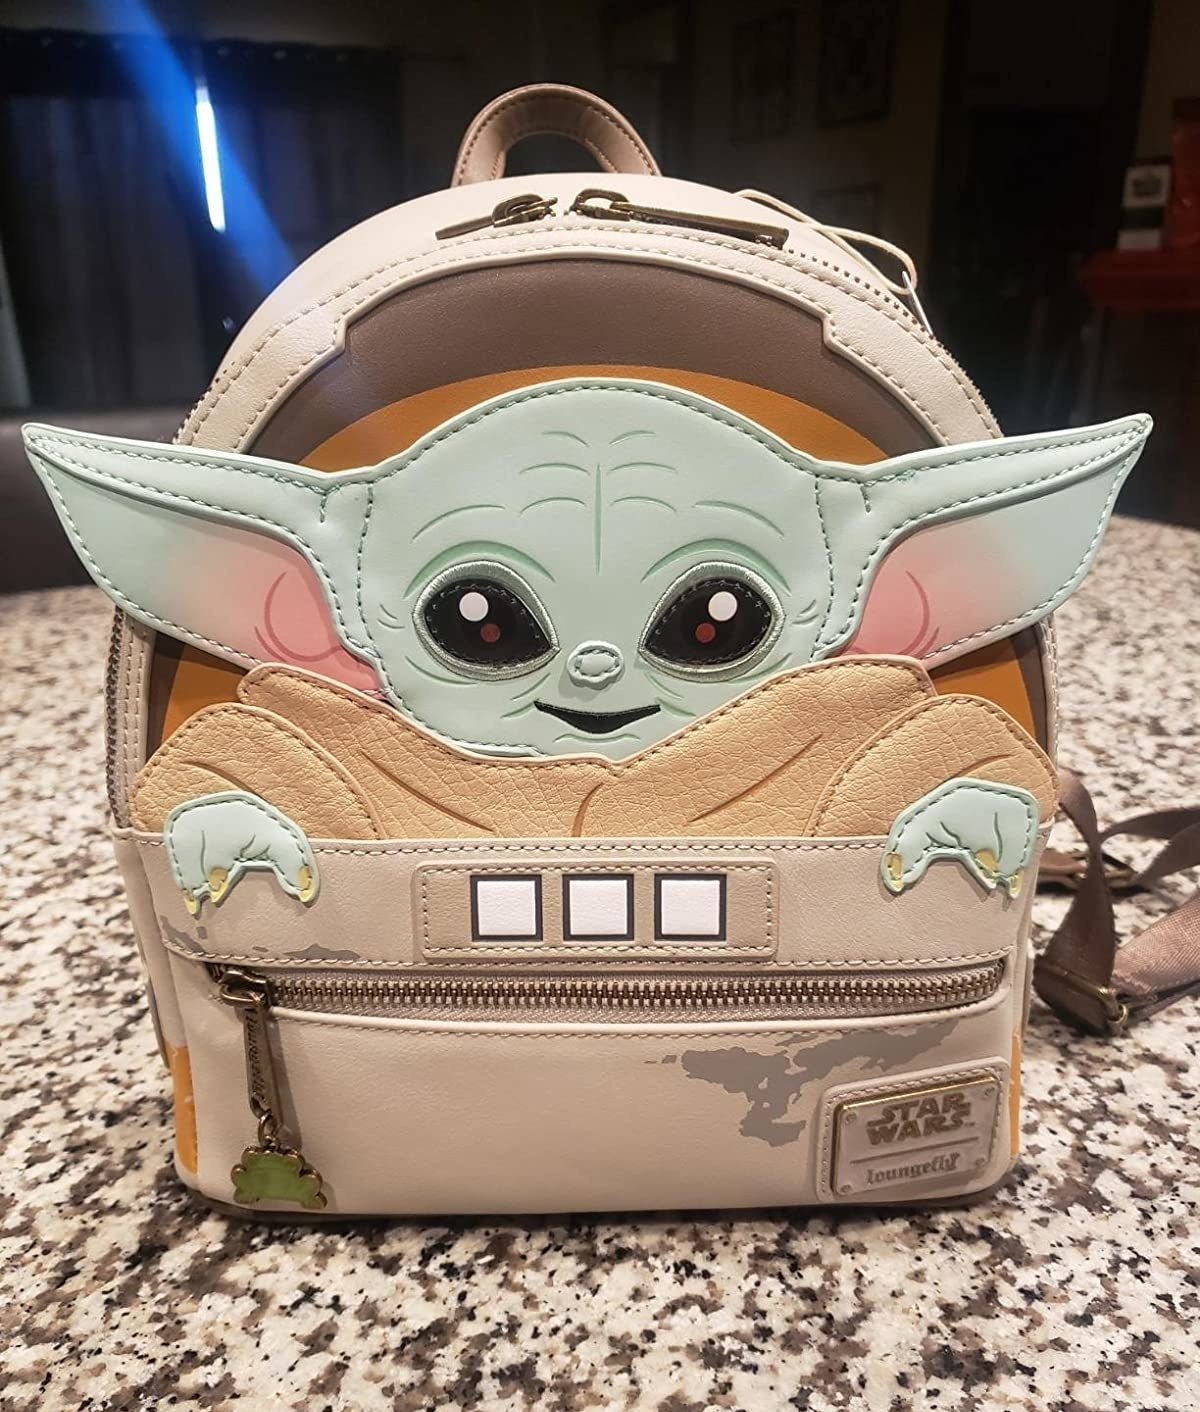 The backpack shaped like Baby Yoda in his pram